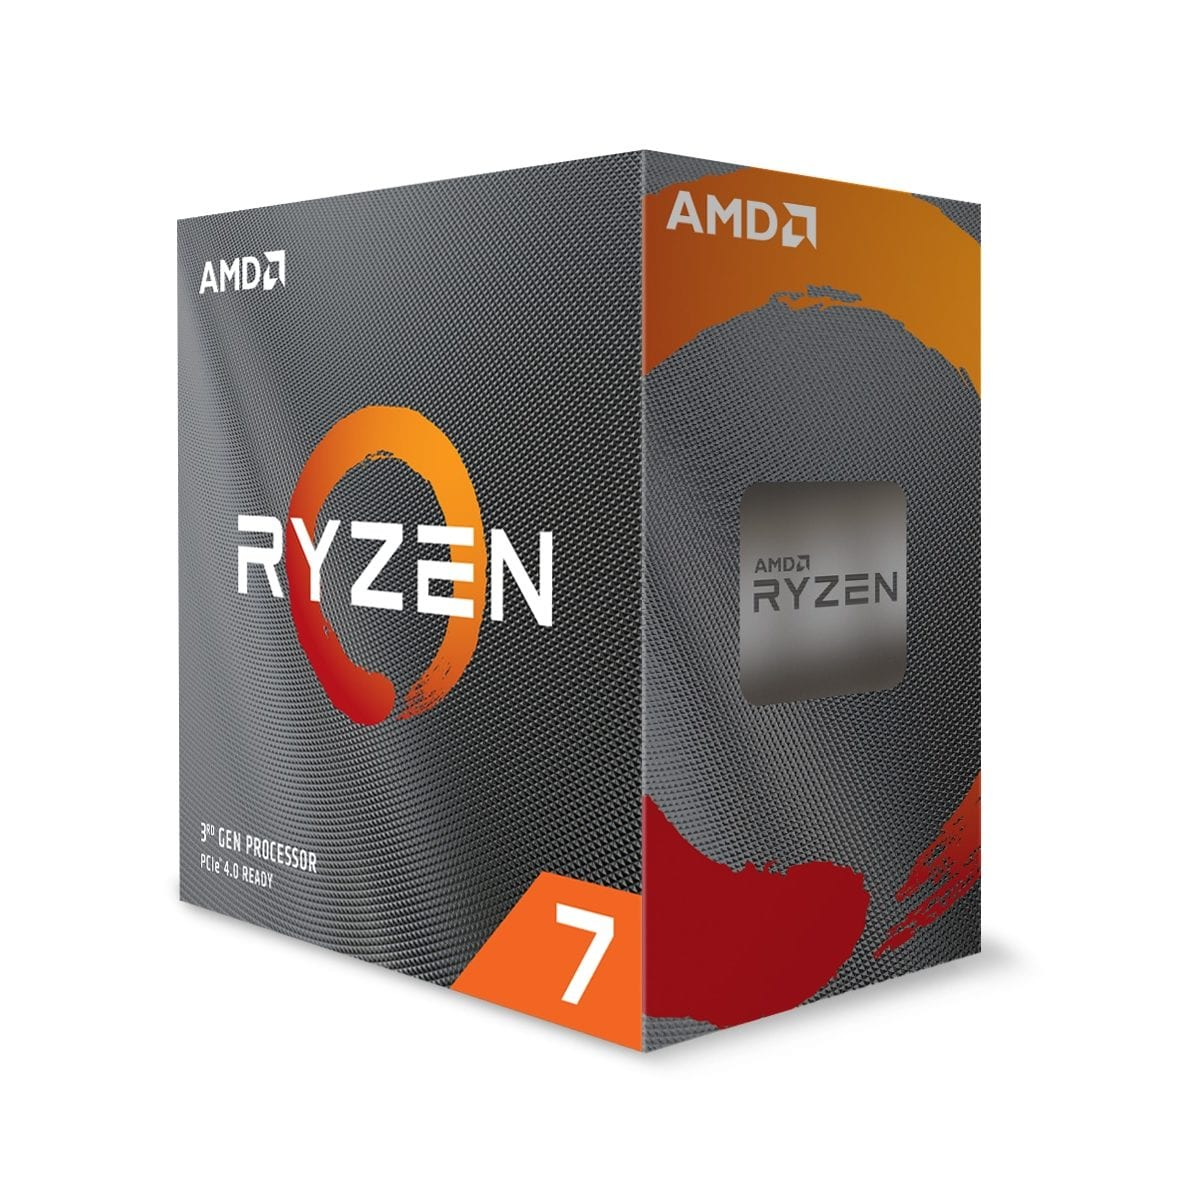 Ryzen 7 Box - 3800XT vs 3700X